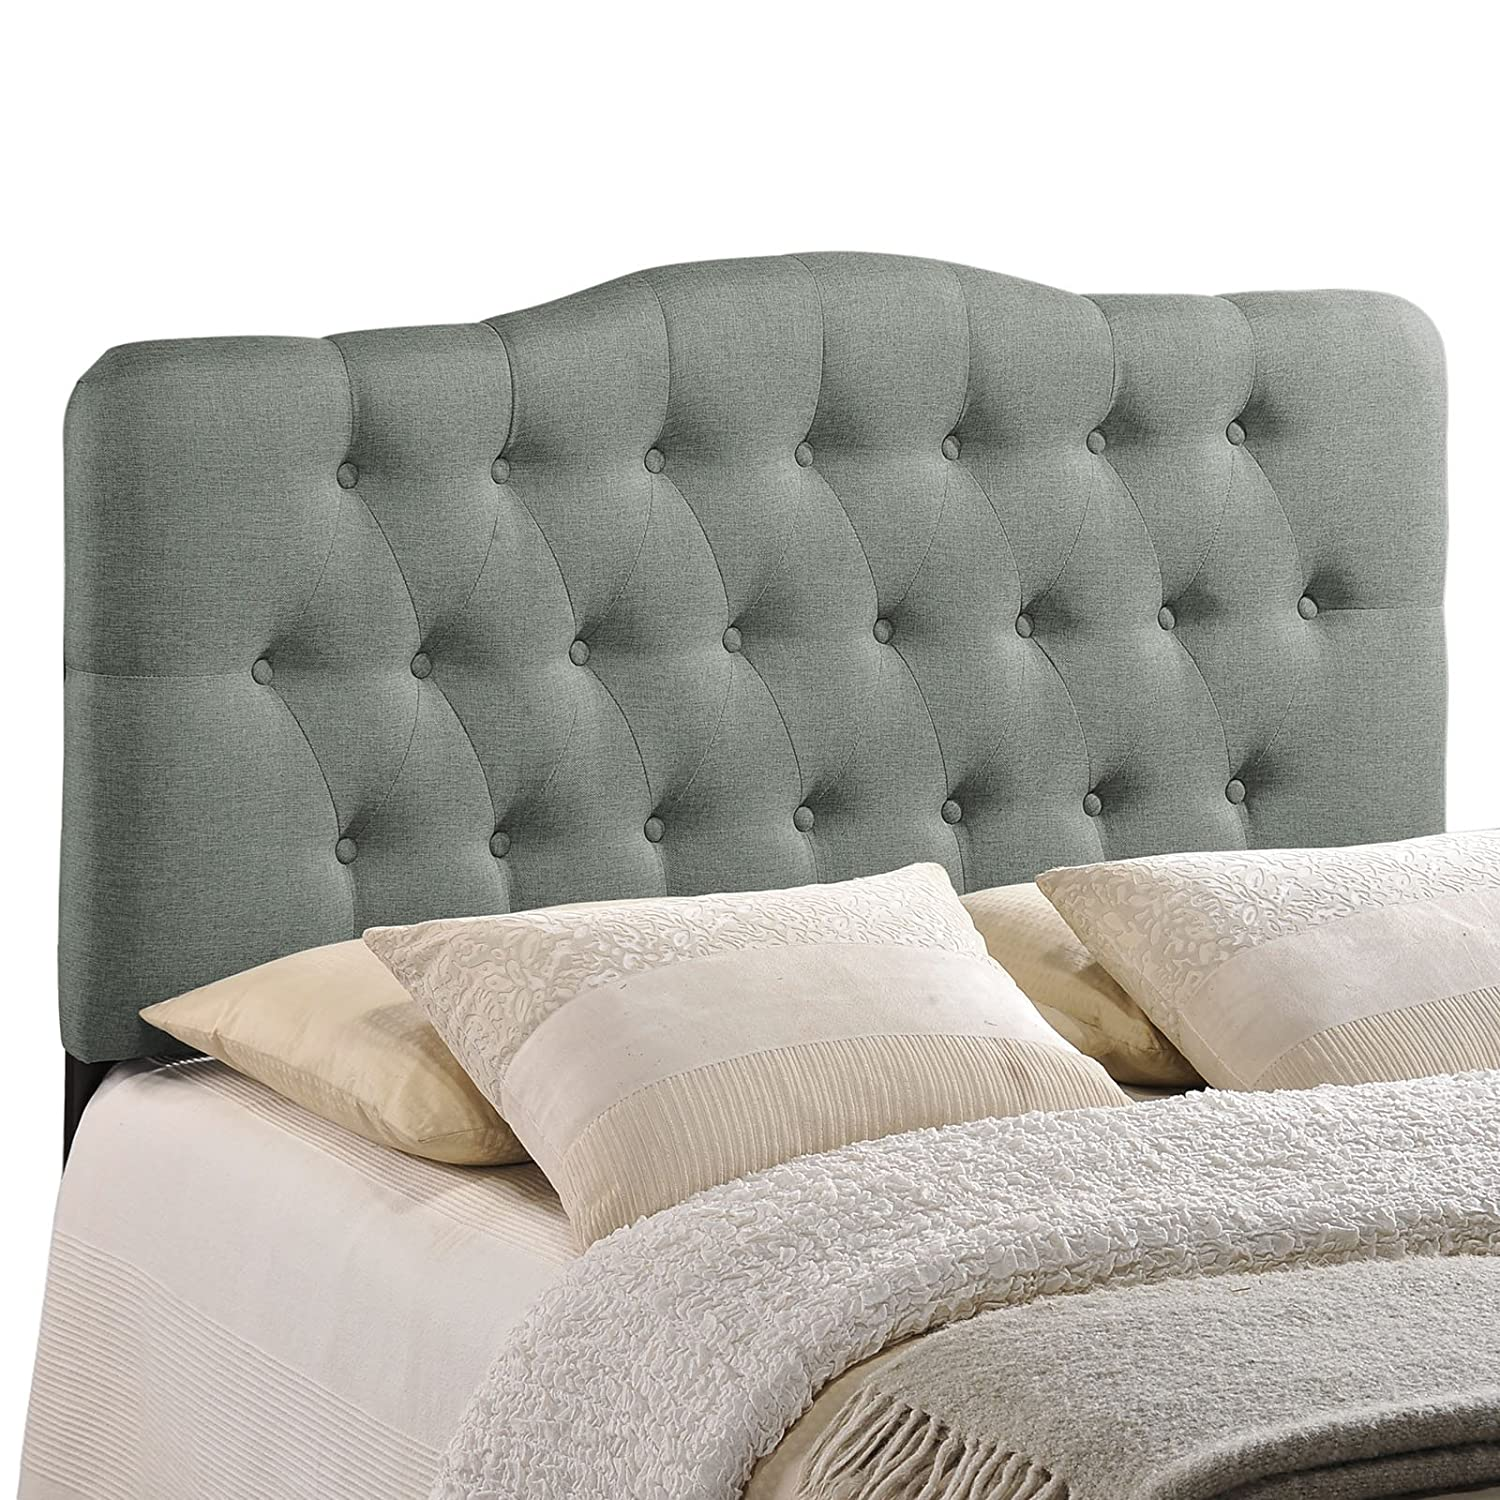 single large button headboards upholstered canada queen padded size headboard emily cheap nz kit fabric dimensions of king studded amazon only tufted modway